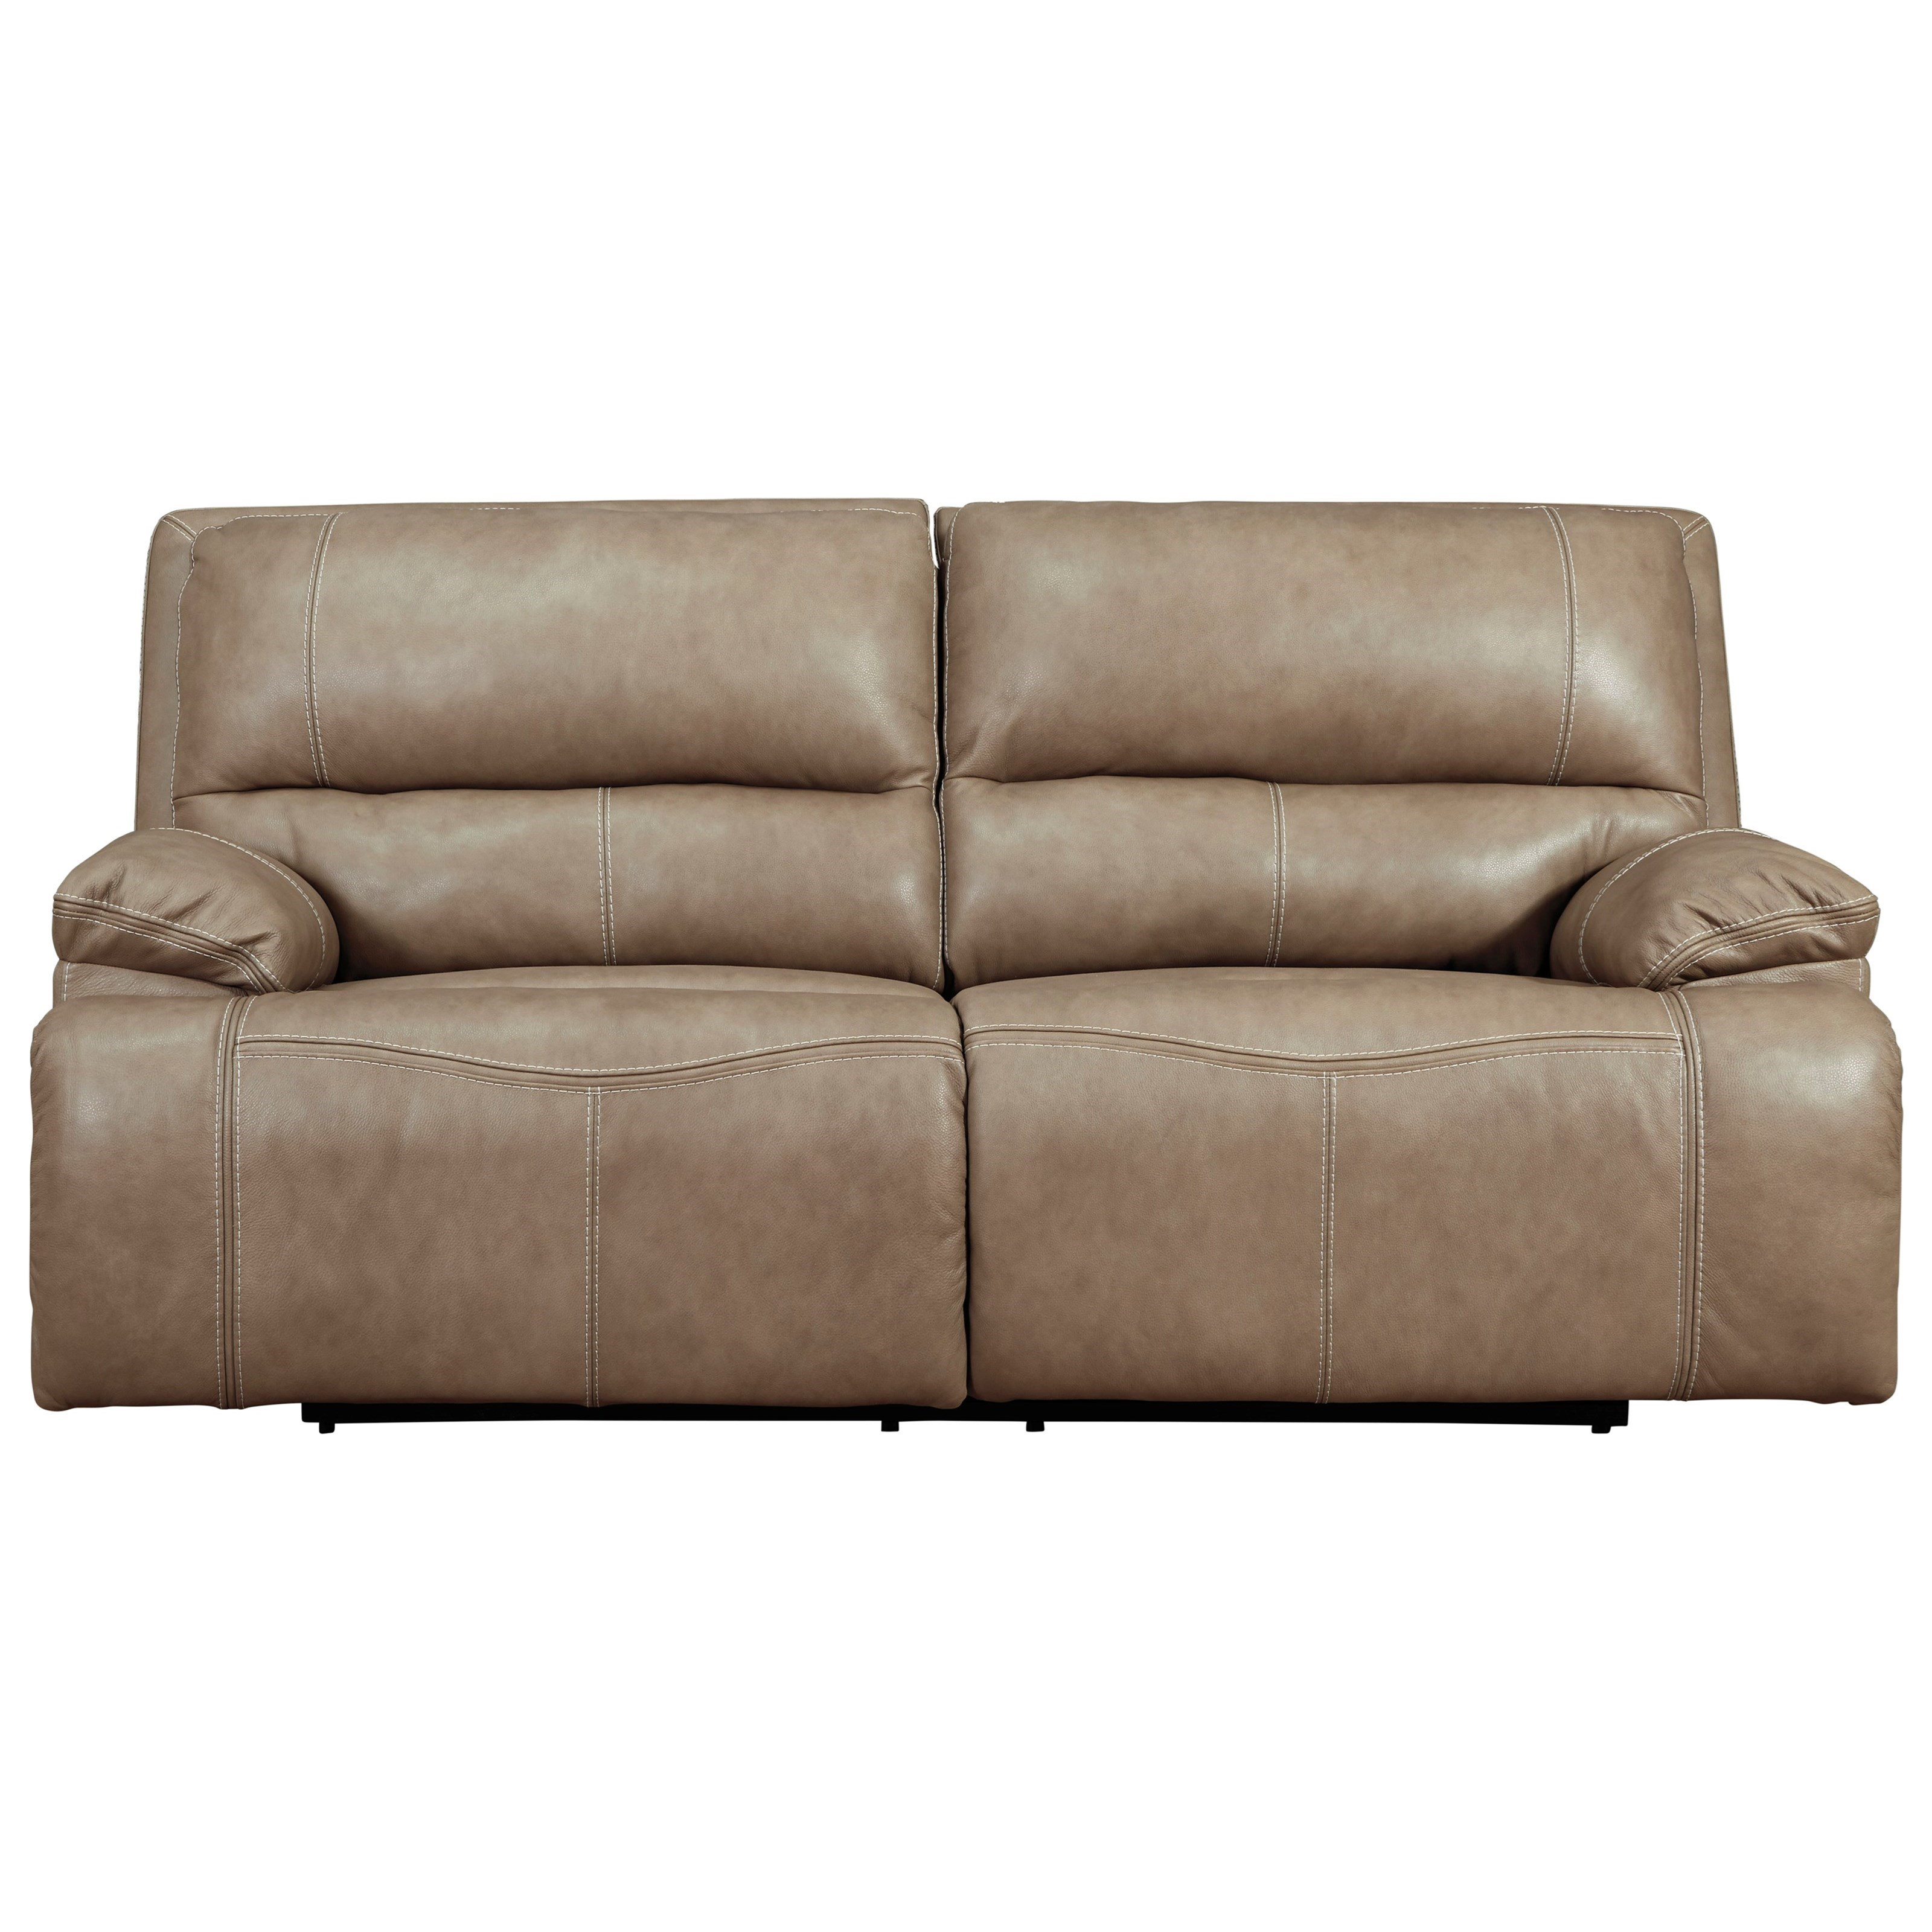 Ricmen 2-Seat Power Reclining Sofa w/ Adj Headrests by Signature Design by Ashley at Beck's Furniture